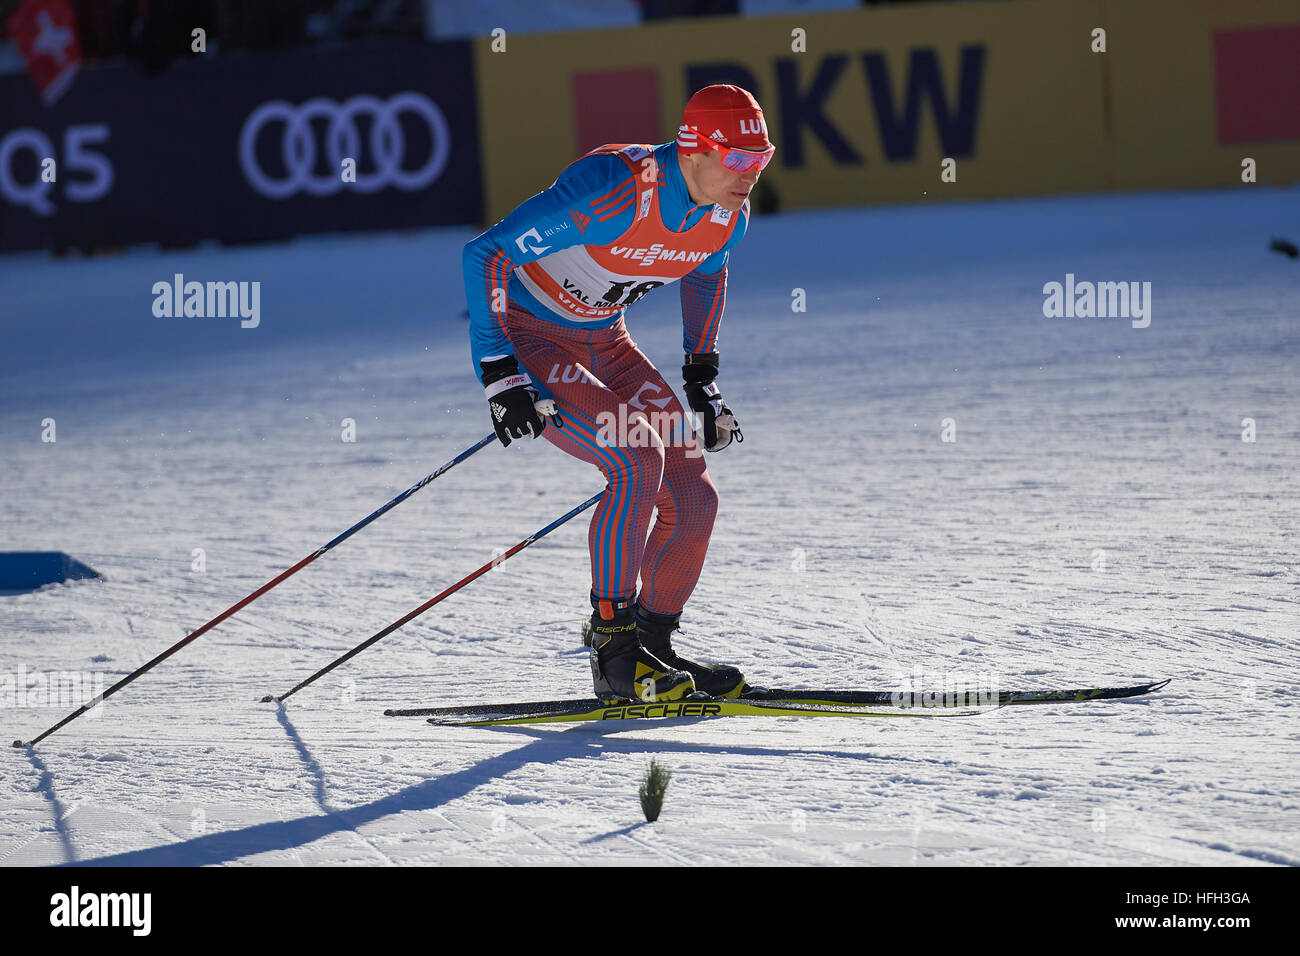 Val Müstair, Switzerland, 31st December 2016. Andrey Larkov during the Men' Sprint competition at the FIS Cross - Stock Image